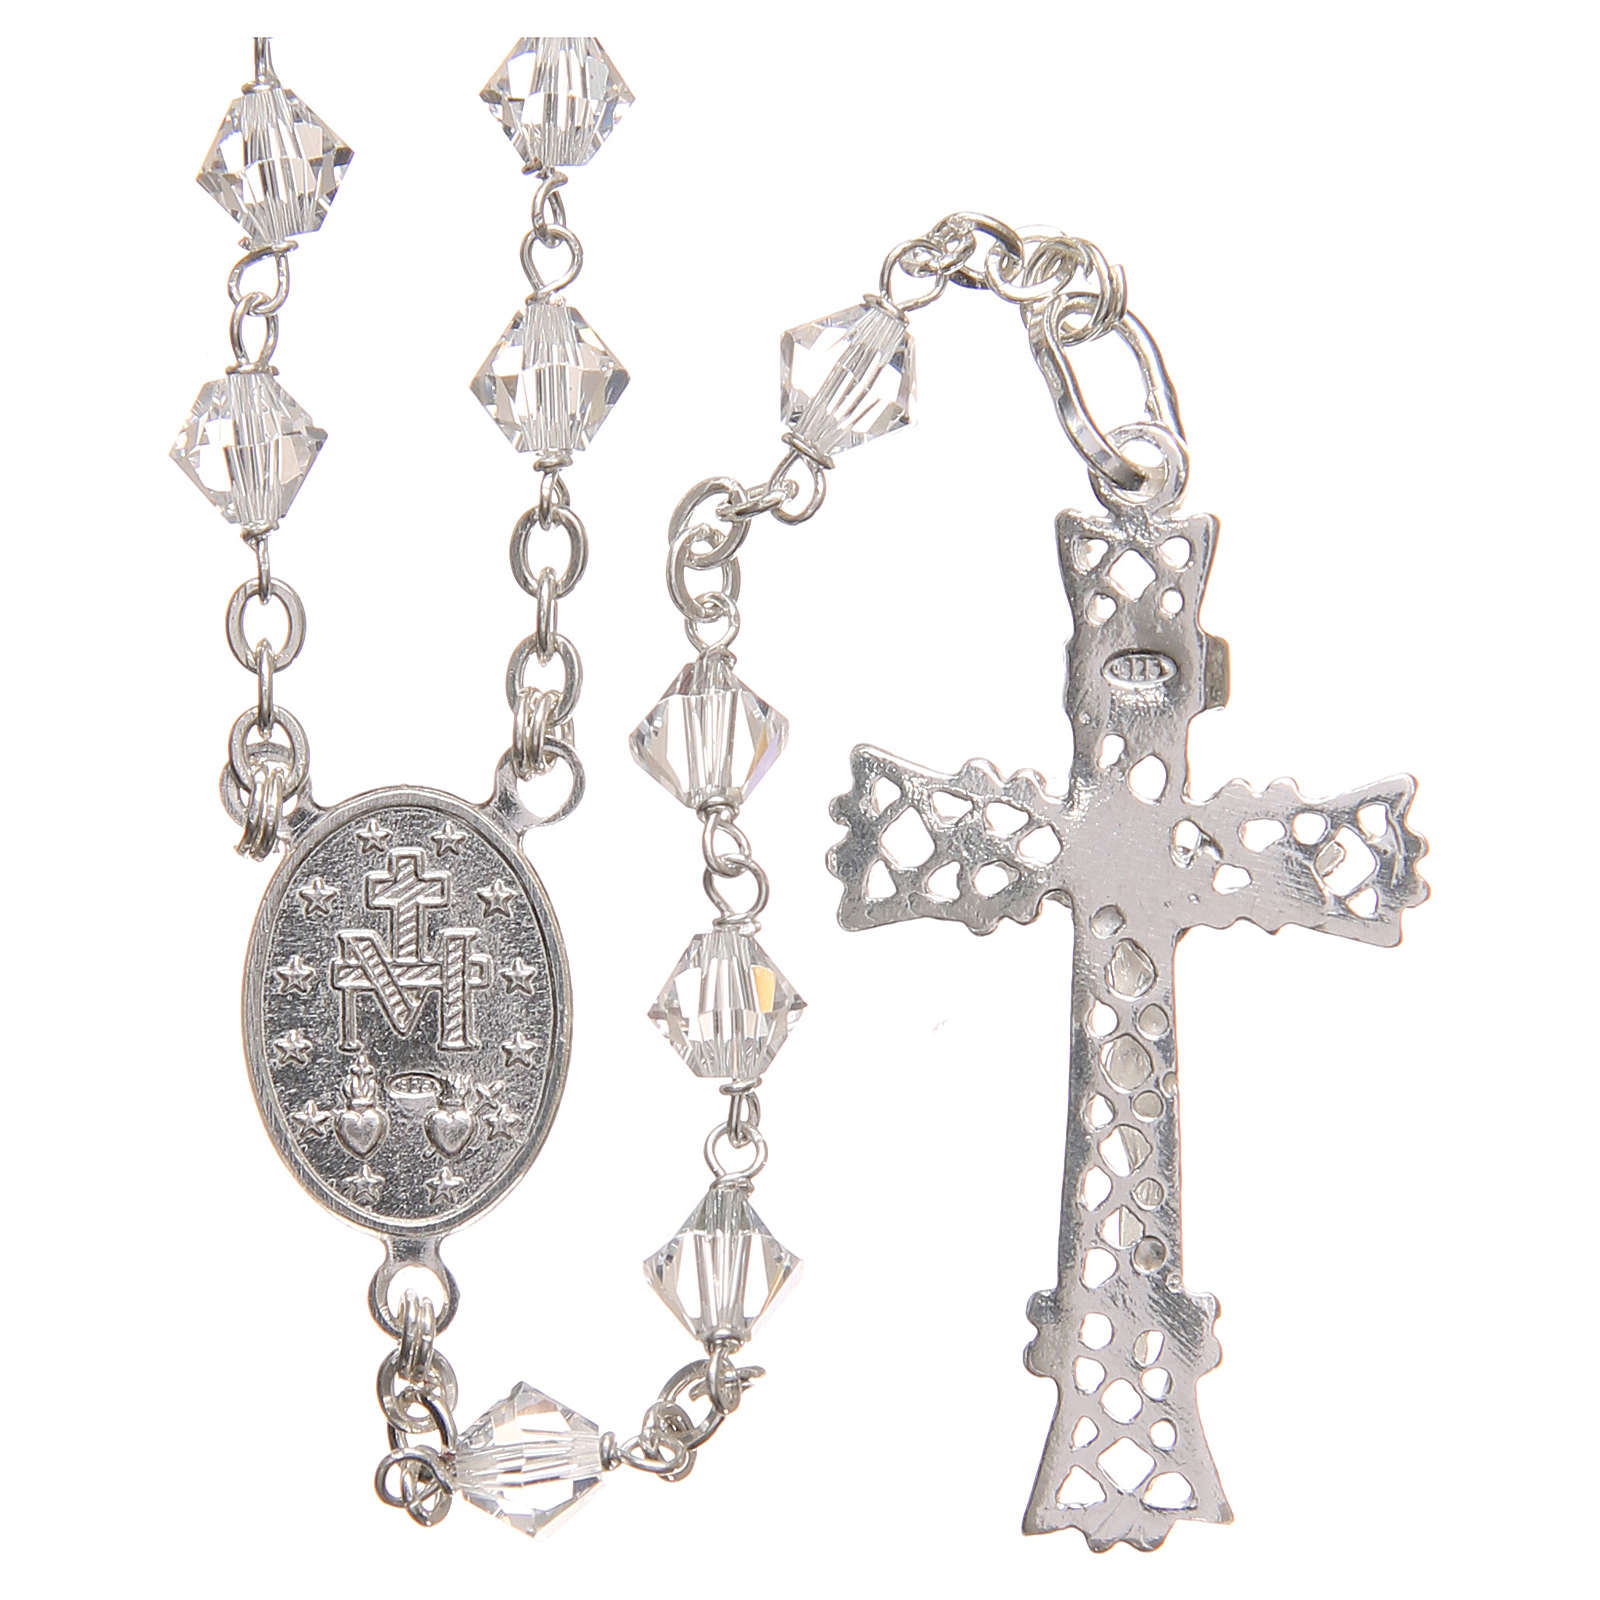 Rosary beads in Swarovski and sterling silver 6mm clear 4